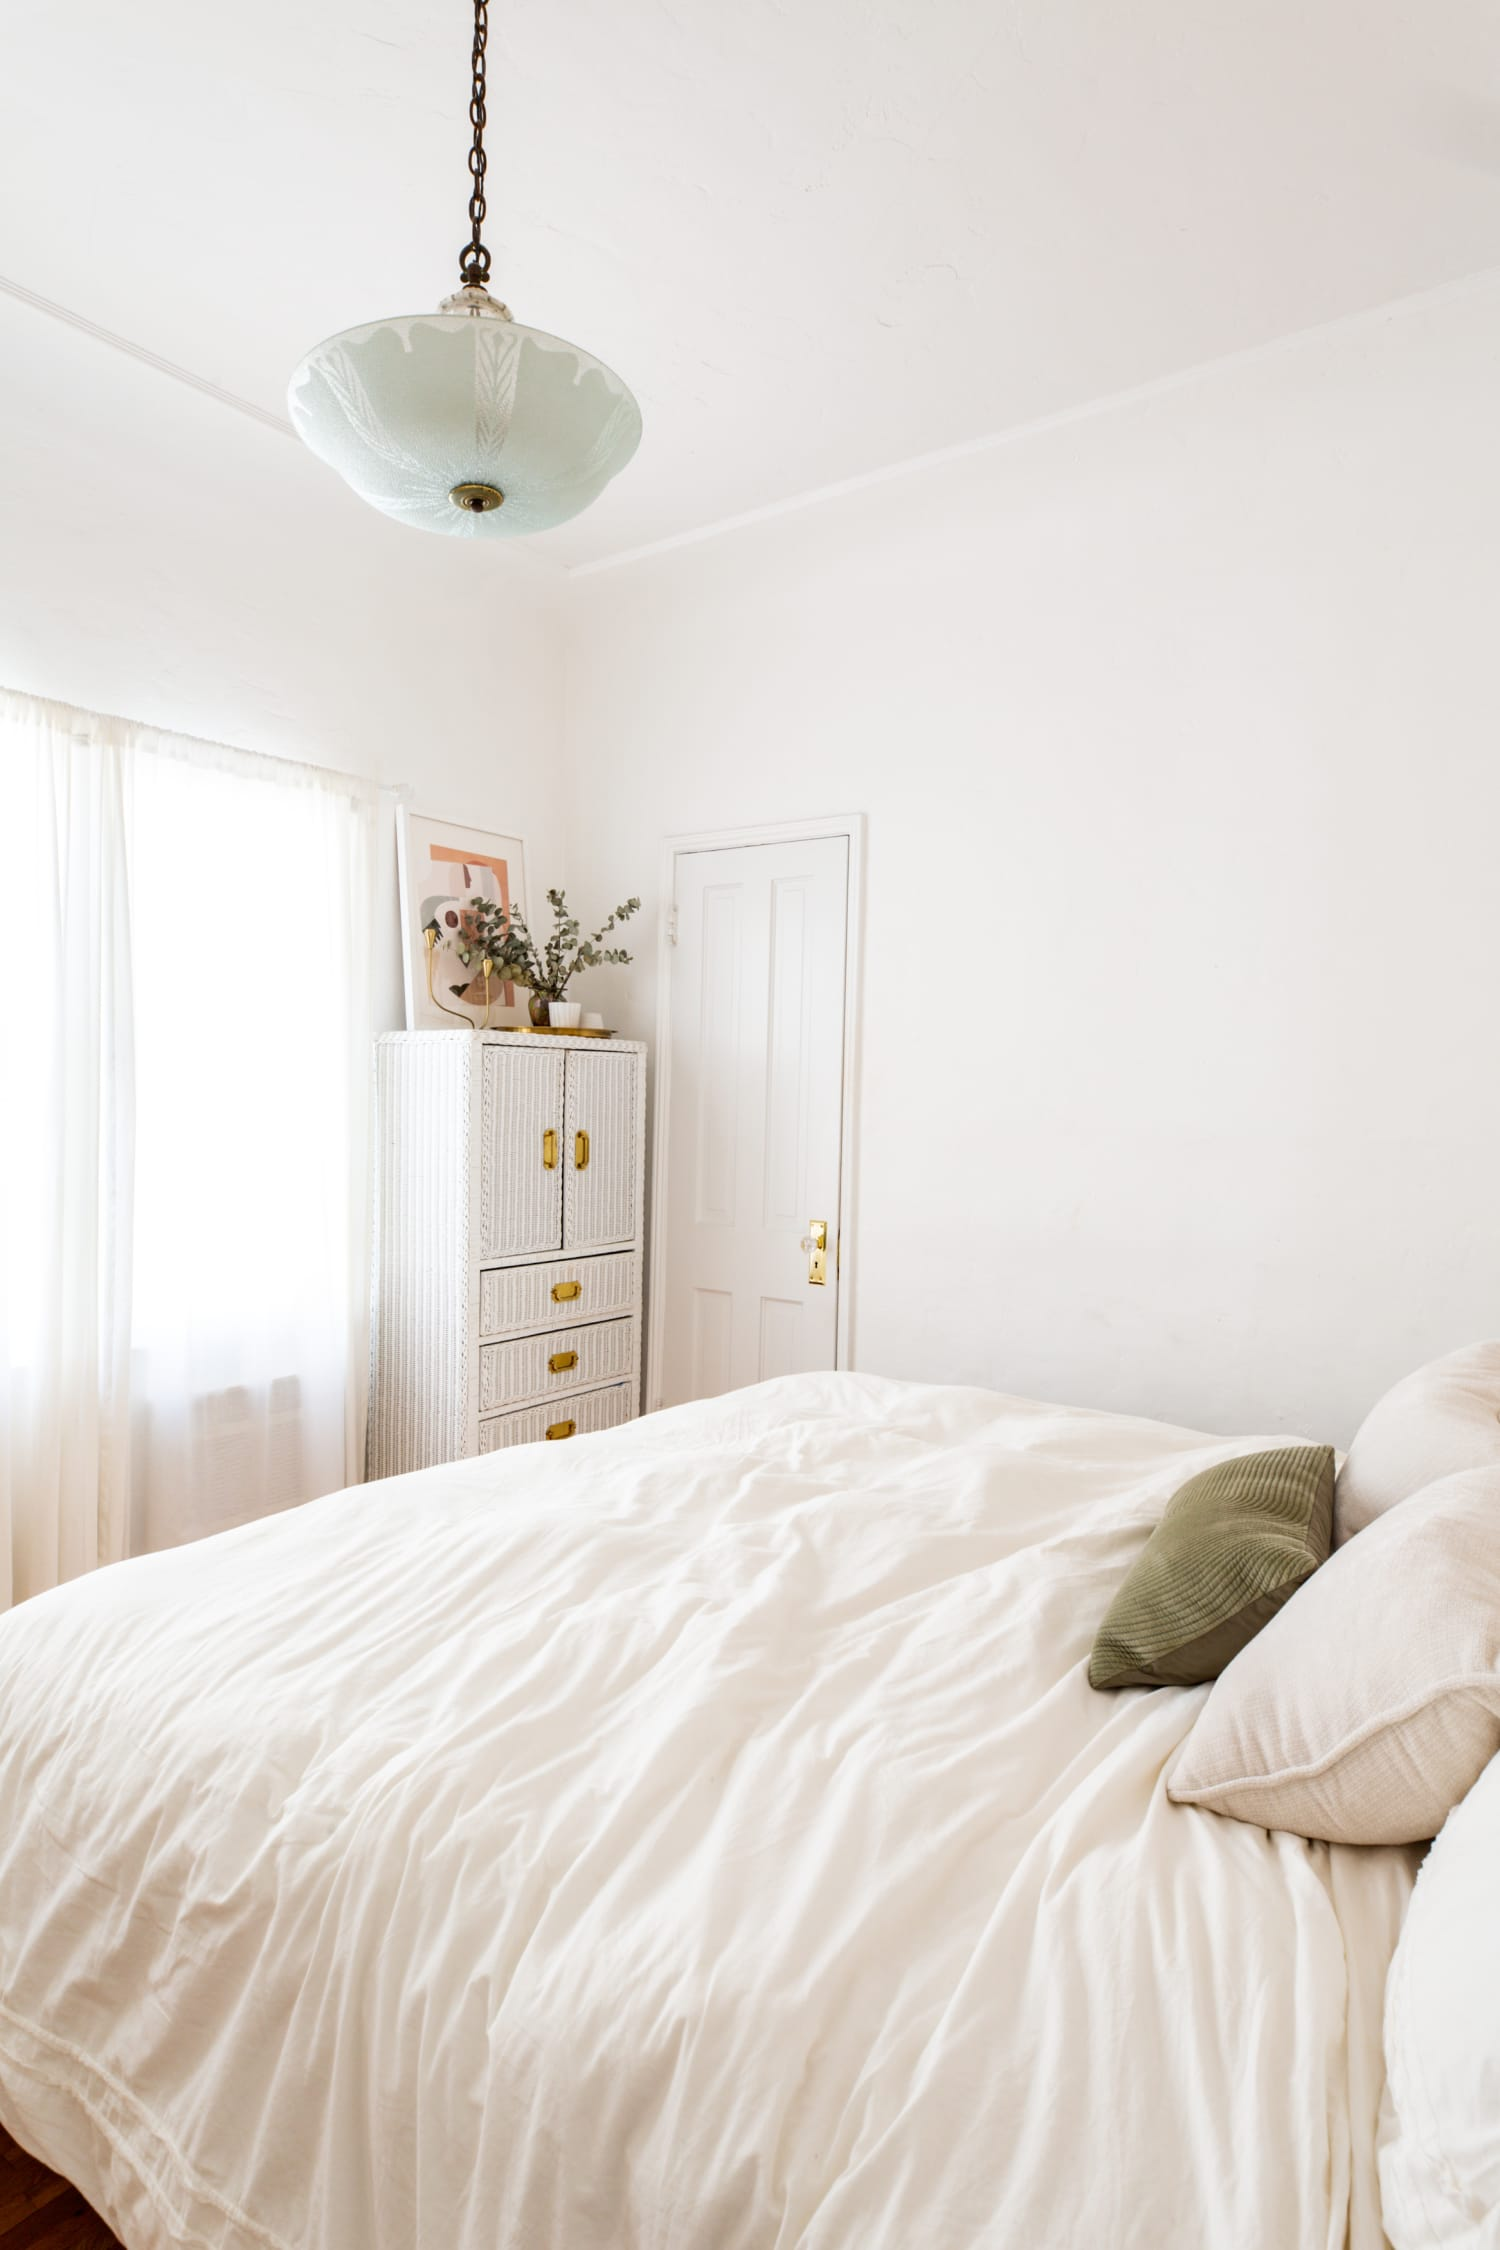 12 Scandinavian Bedroom Ideas Photos Of Lovely Scandinavian Style Bedrooms Apartment Therapy